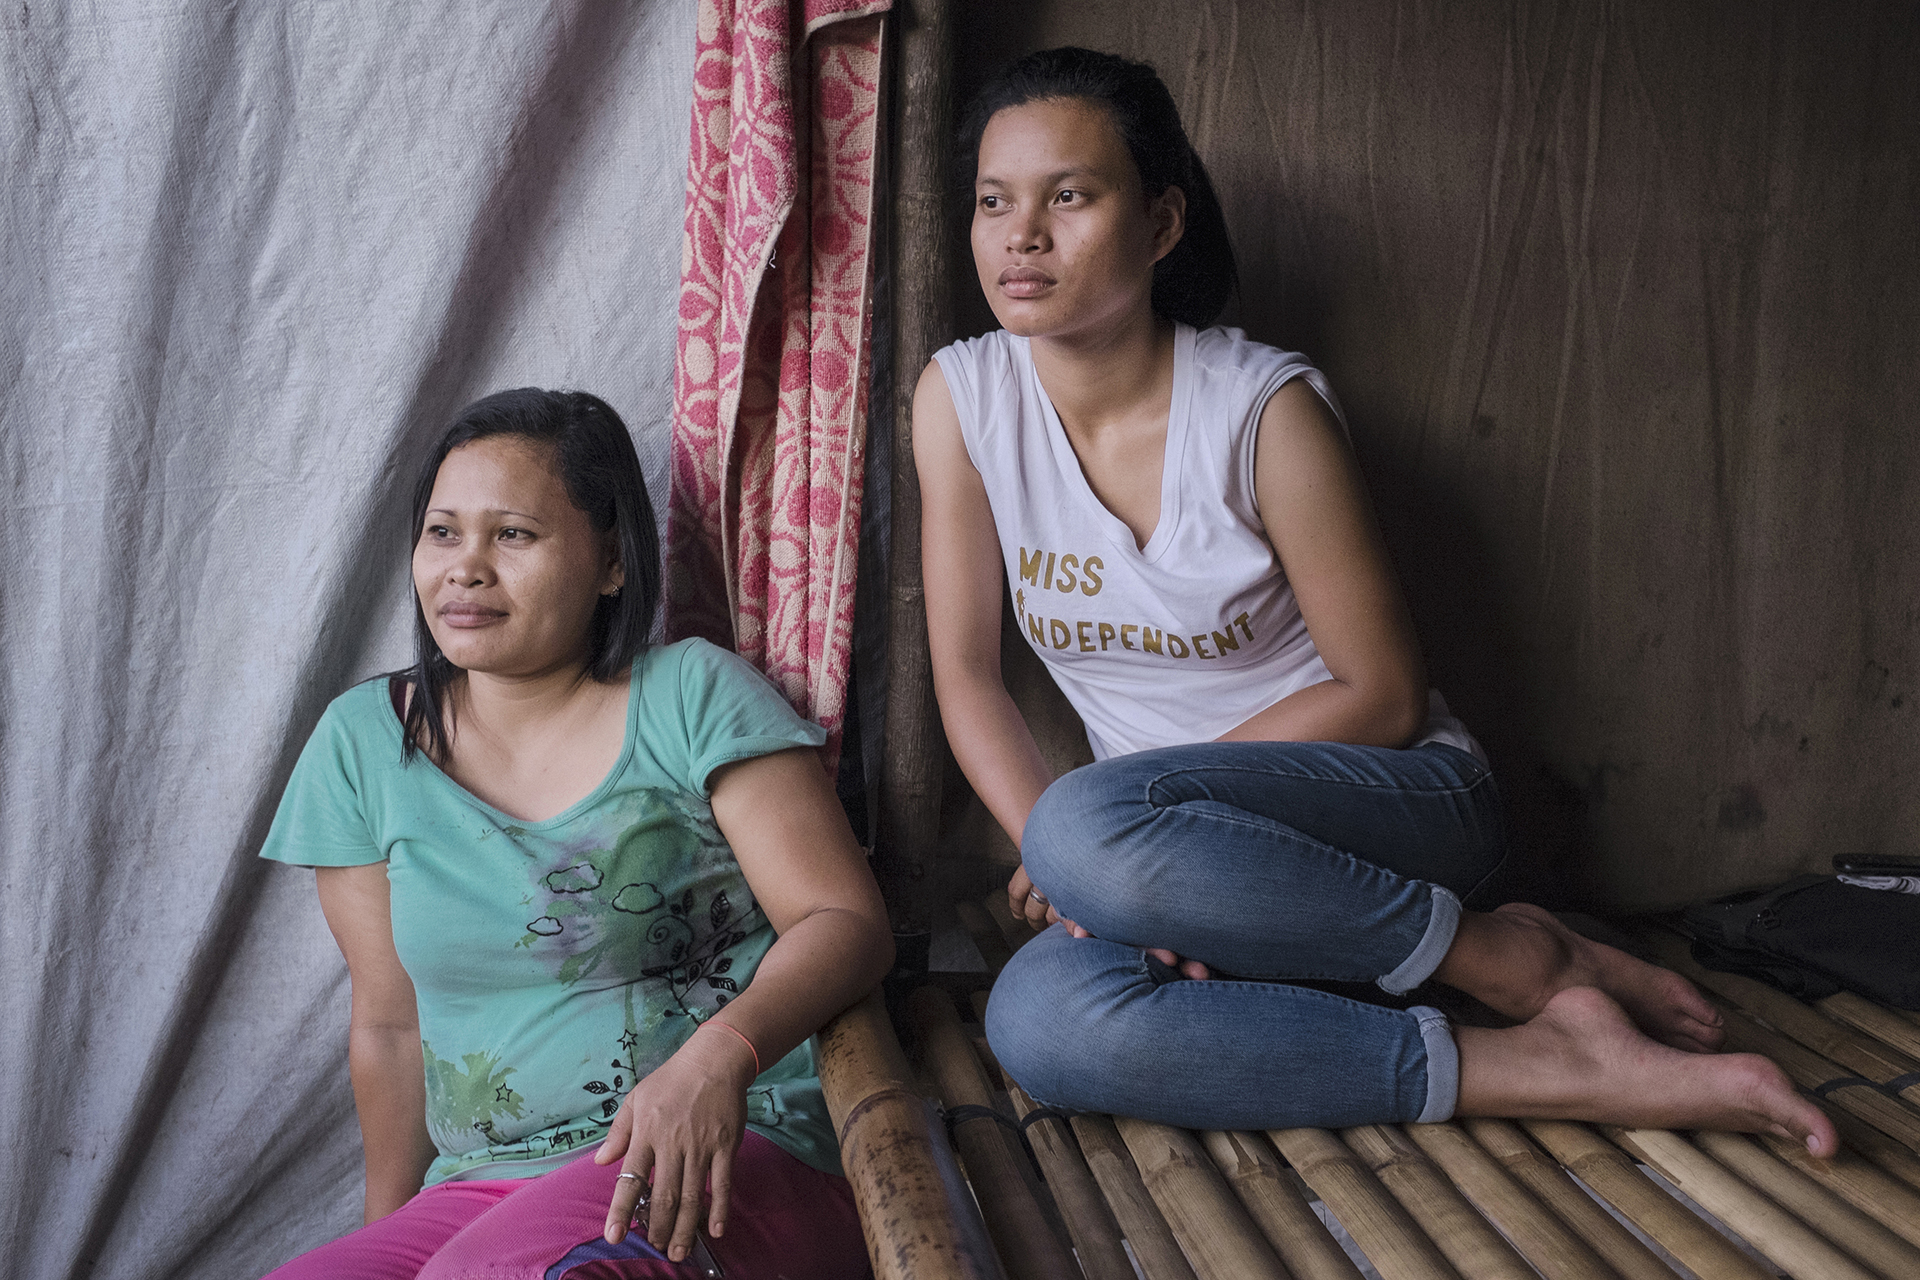 Michele Campos and her mother in a temporary house of the Bakwid evacuation center located in Tandag City, Surigao del Sur, Mindanao, Philippines, 04.2016